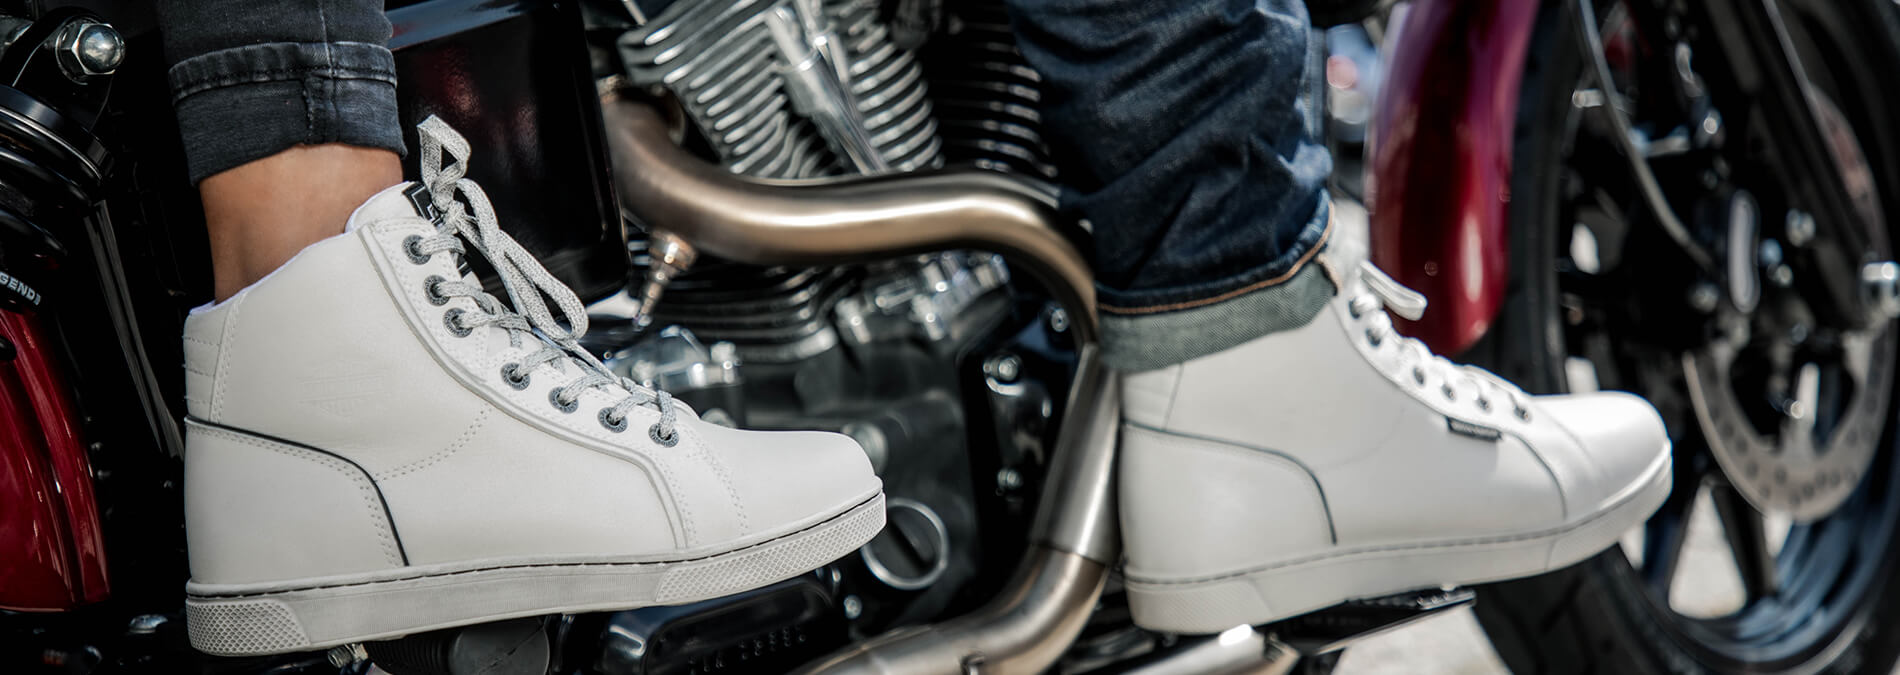 We see the feet of two people sitting on the same bike. They are wearing nice, white shoes.